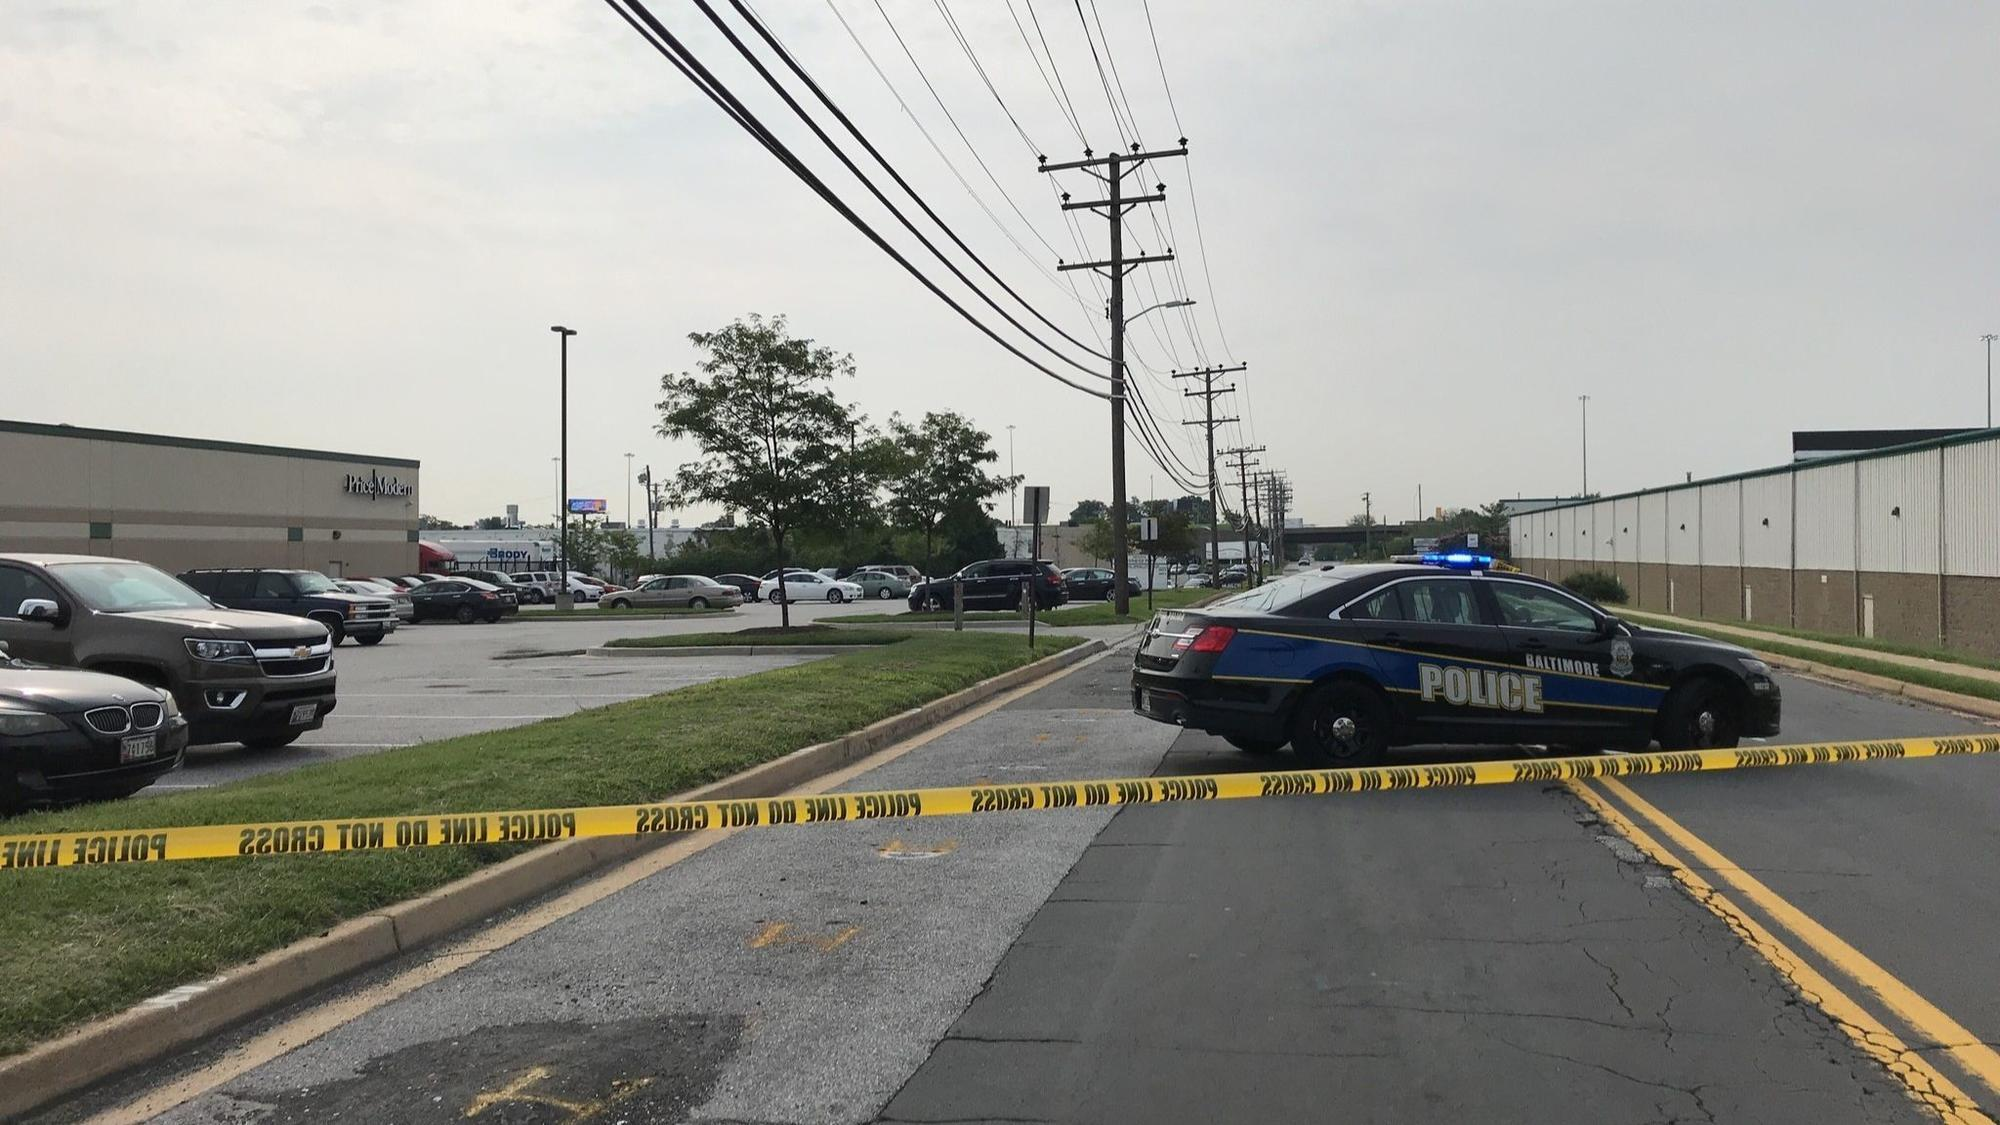 1 dead in double shooting outside Southwest Baltimore business park; police searching for suspect.